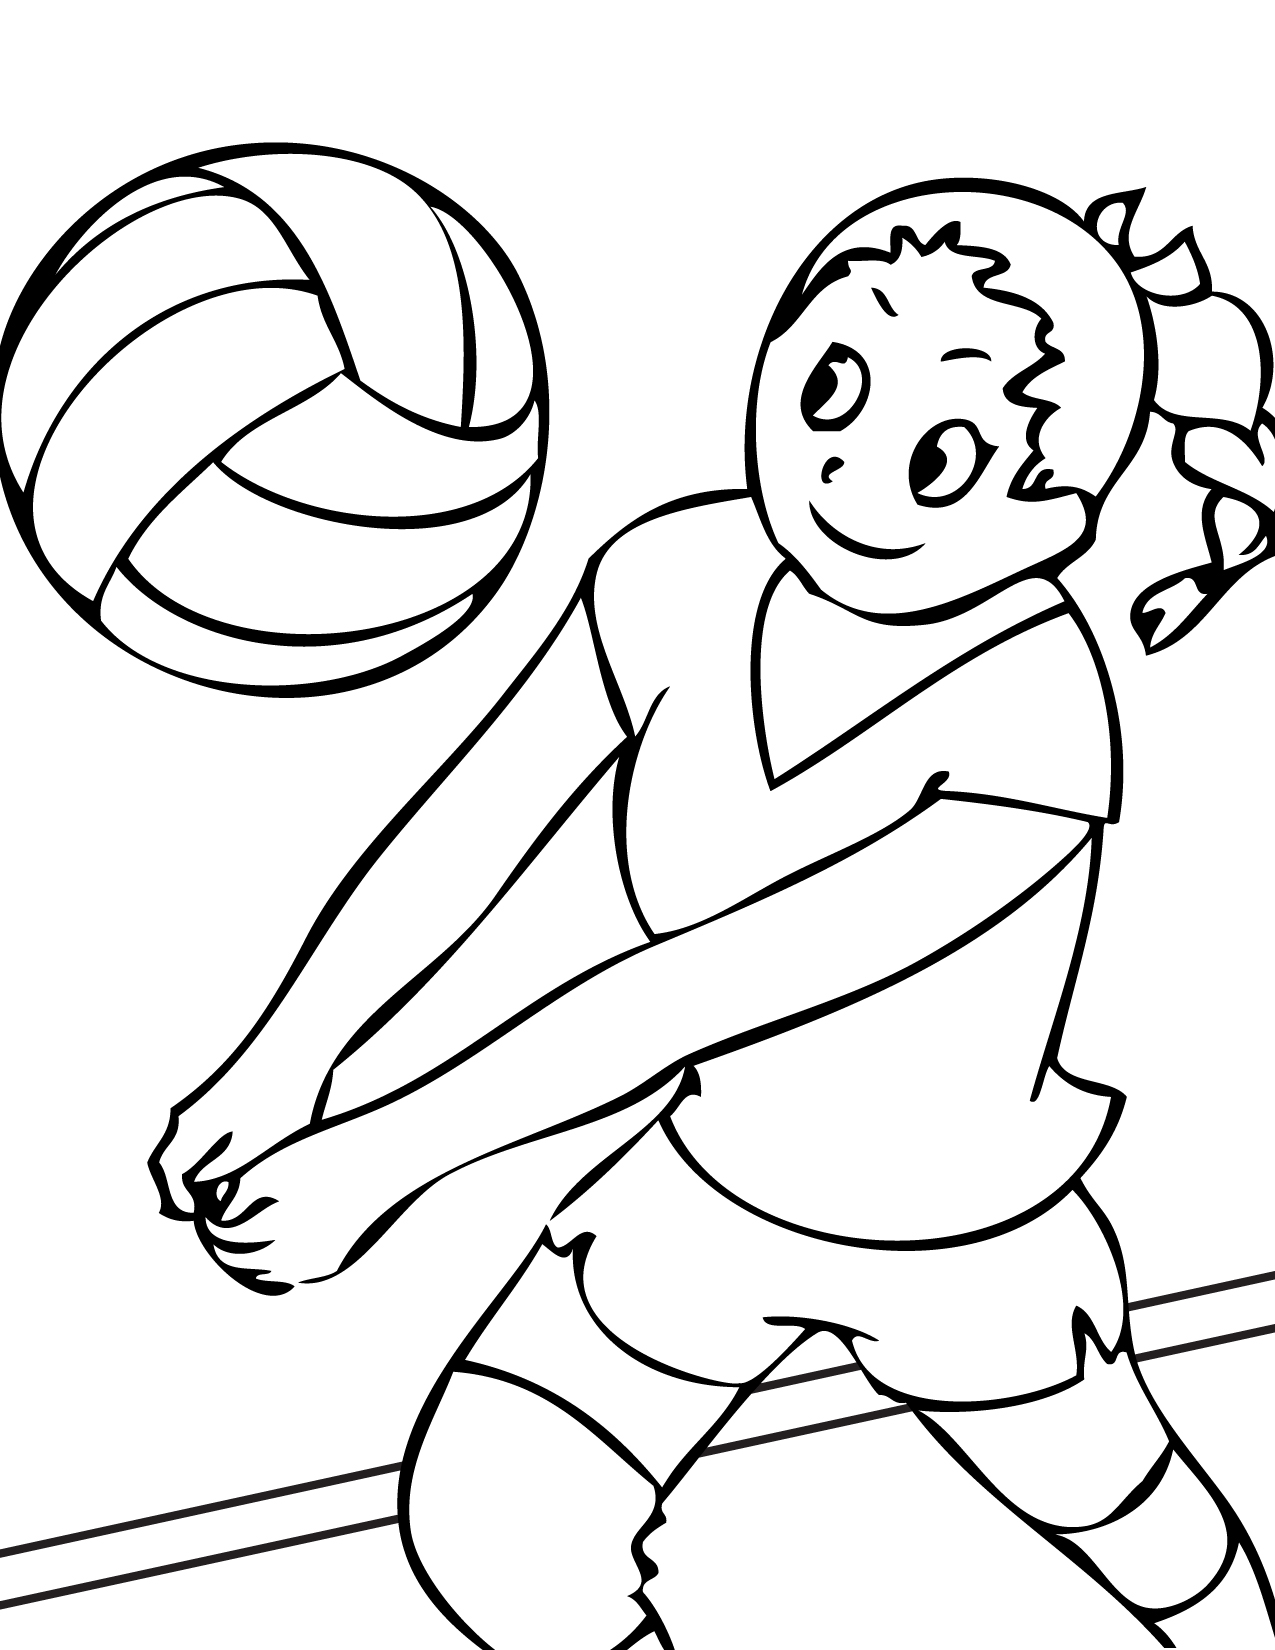 volleyball coloring pages printable volleyball coloring pages for kids cool2bkids volleyball coloring pages